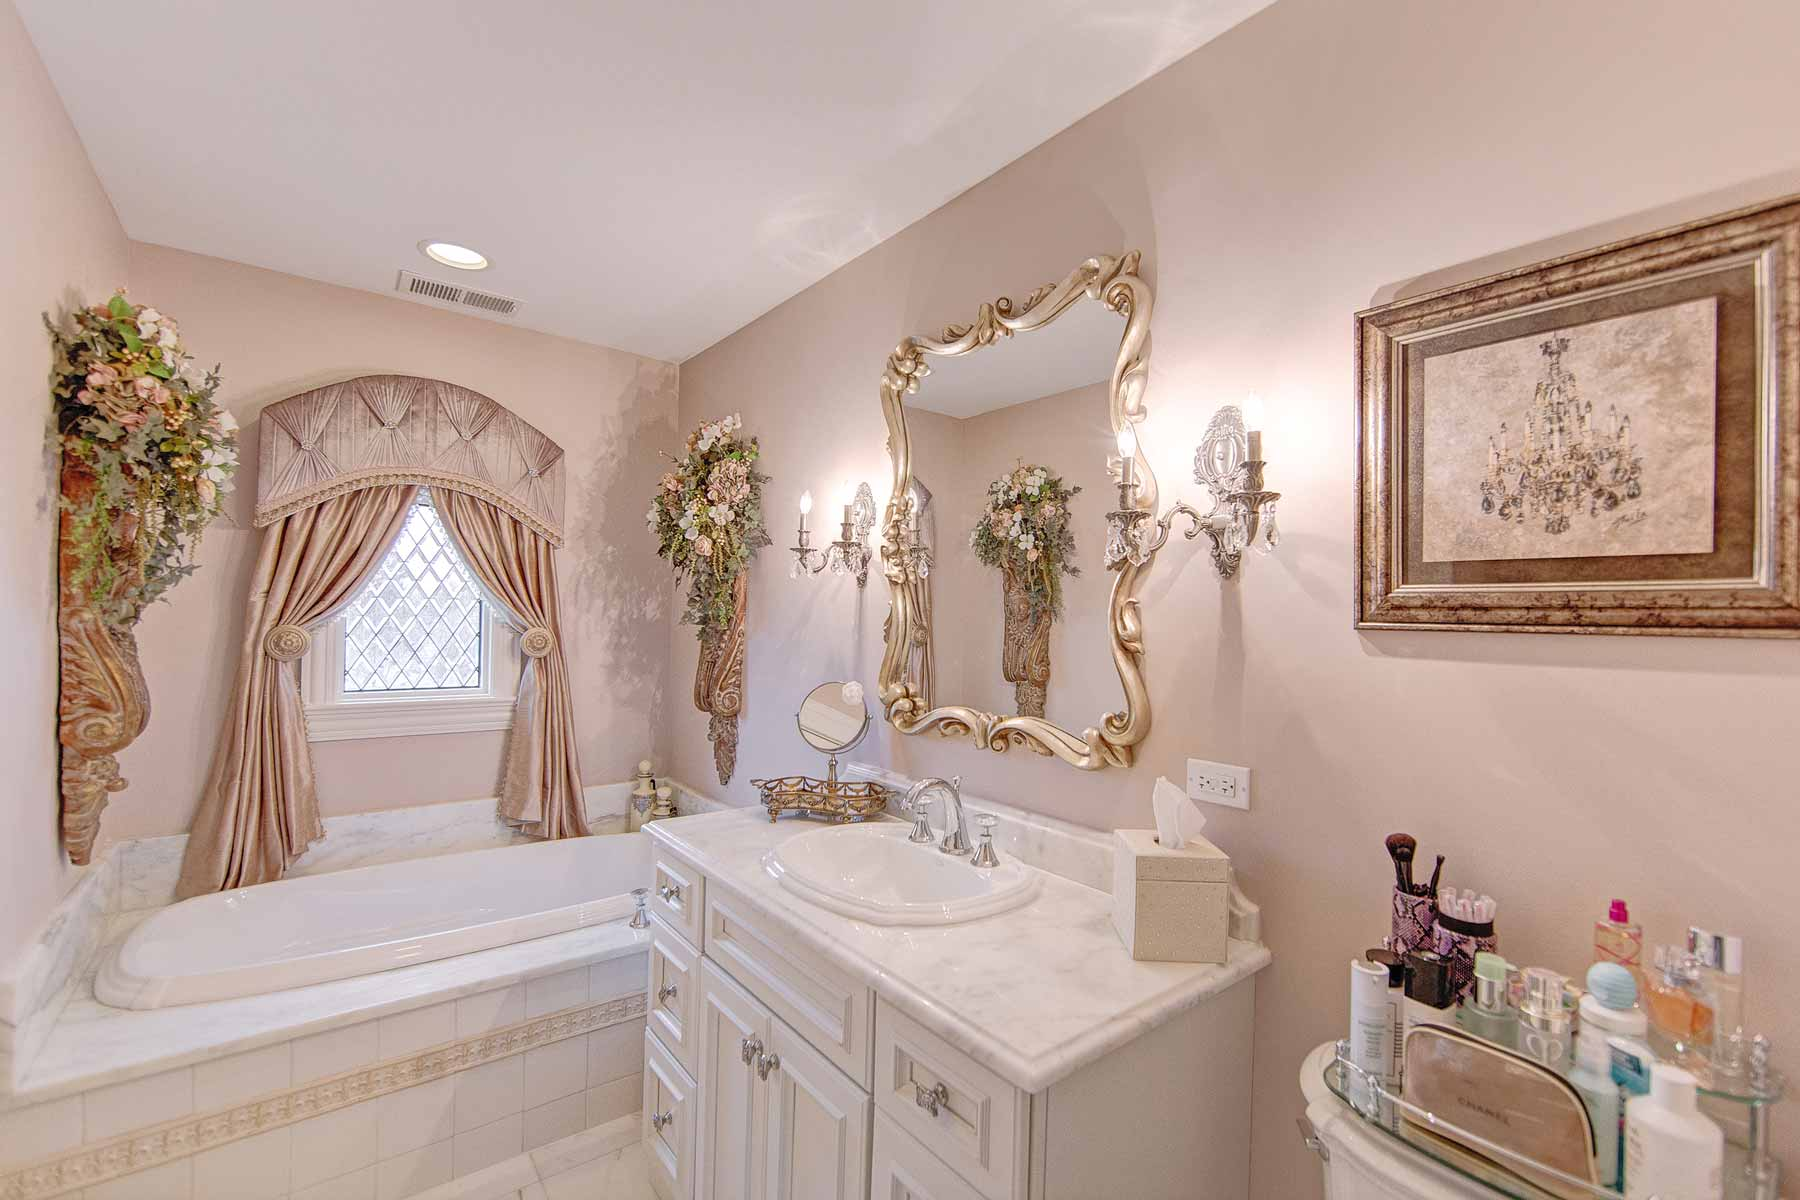 Girls luxury bathroom interior design for Bathroom girls pic